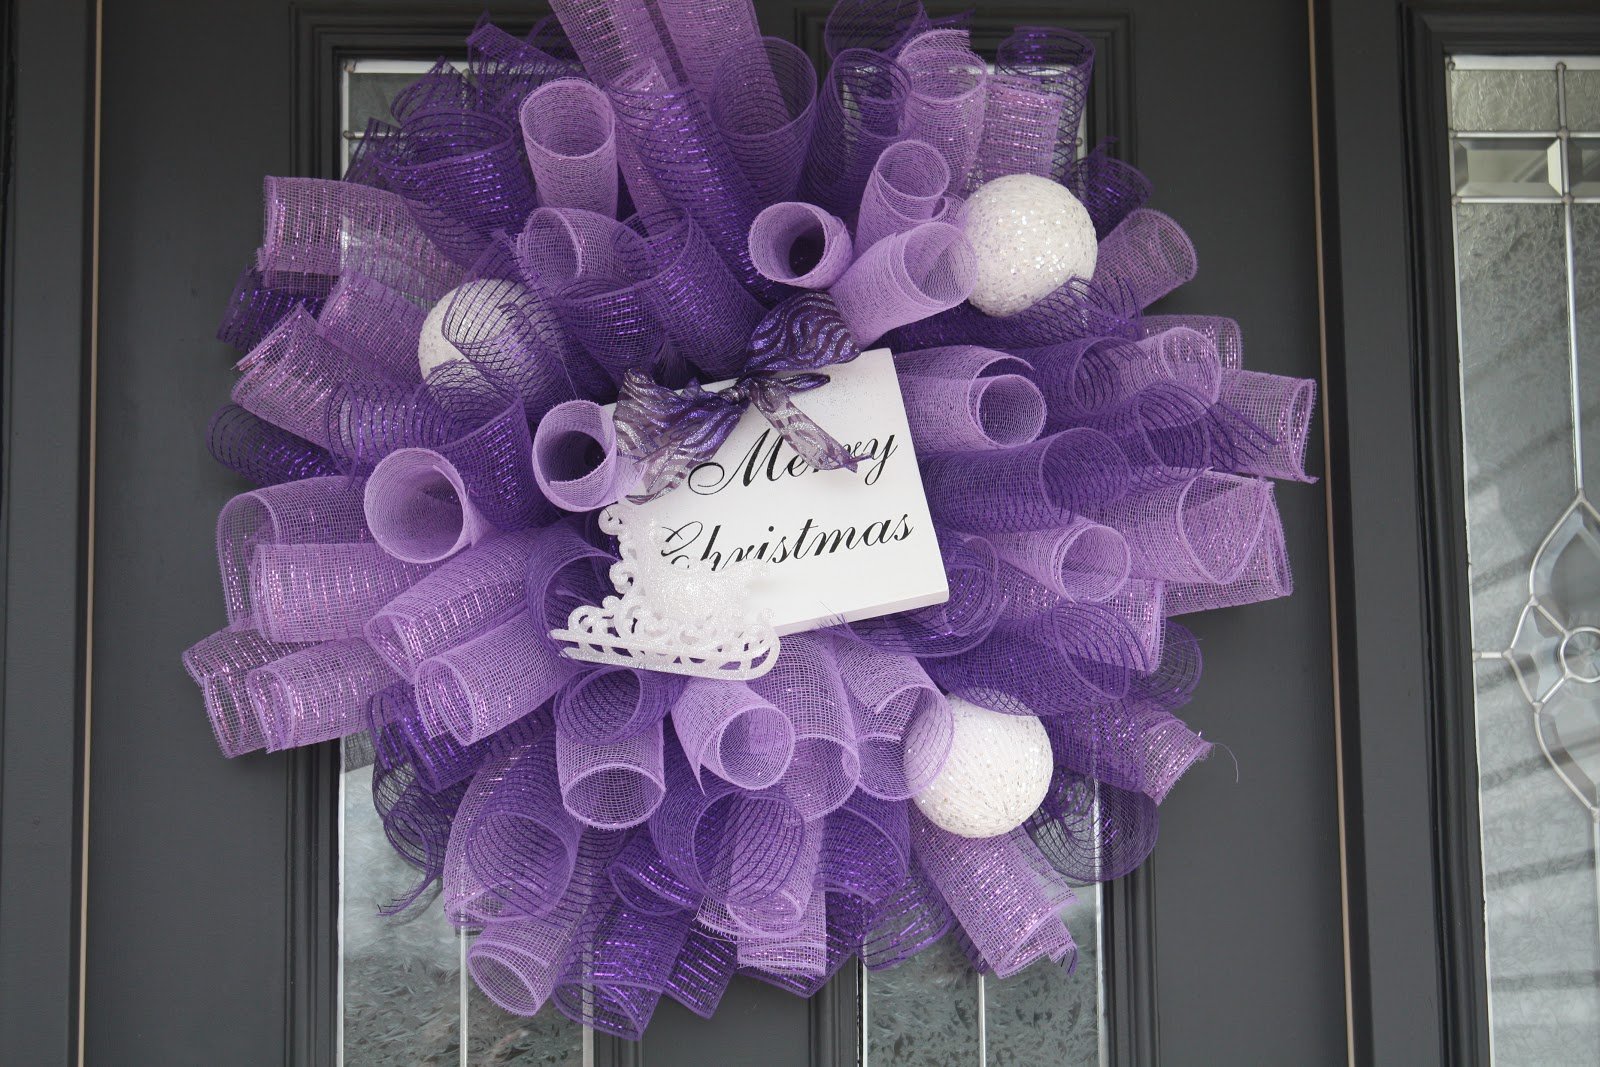 Deco Mesh Wreath Ideas Mother Day Crafts To Make At Home